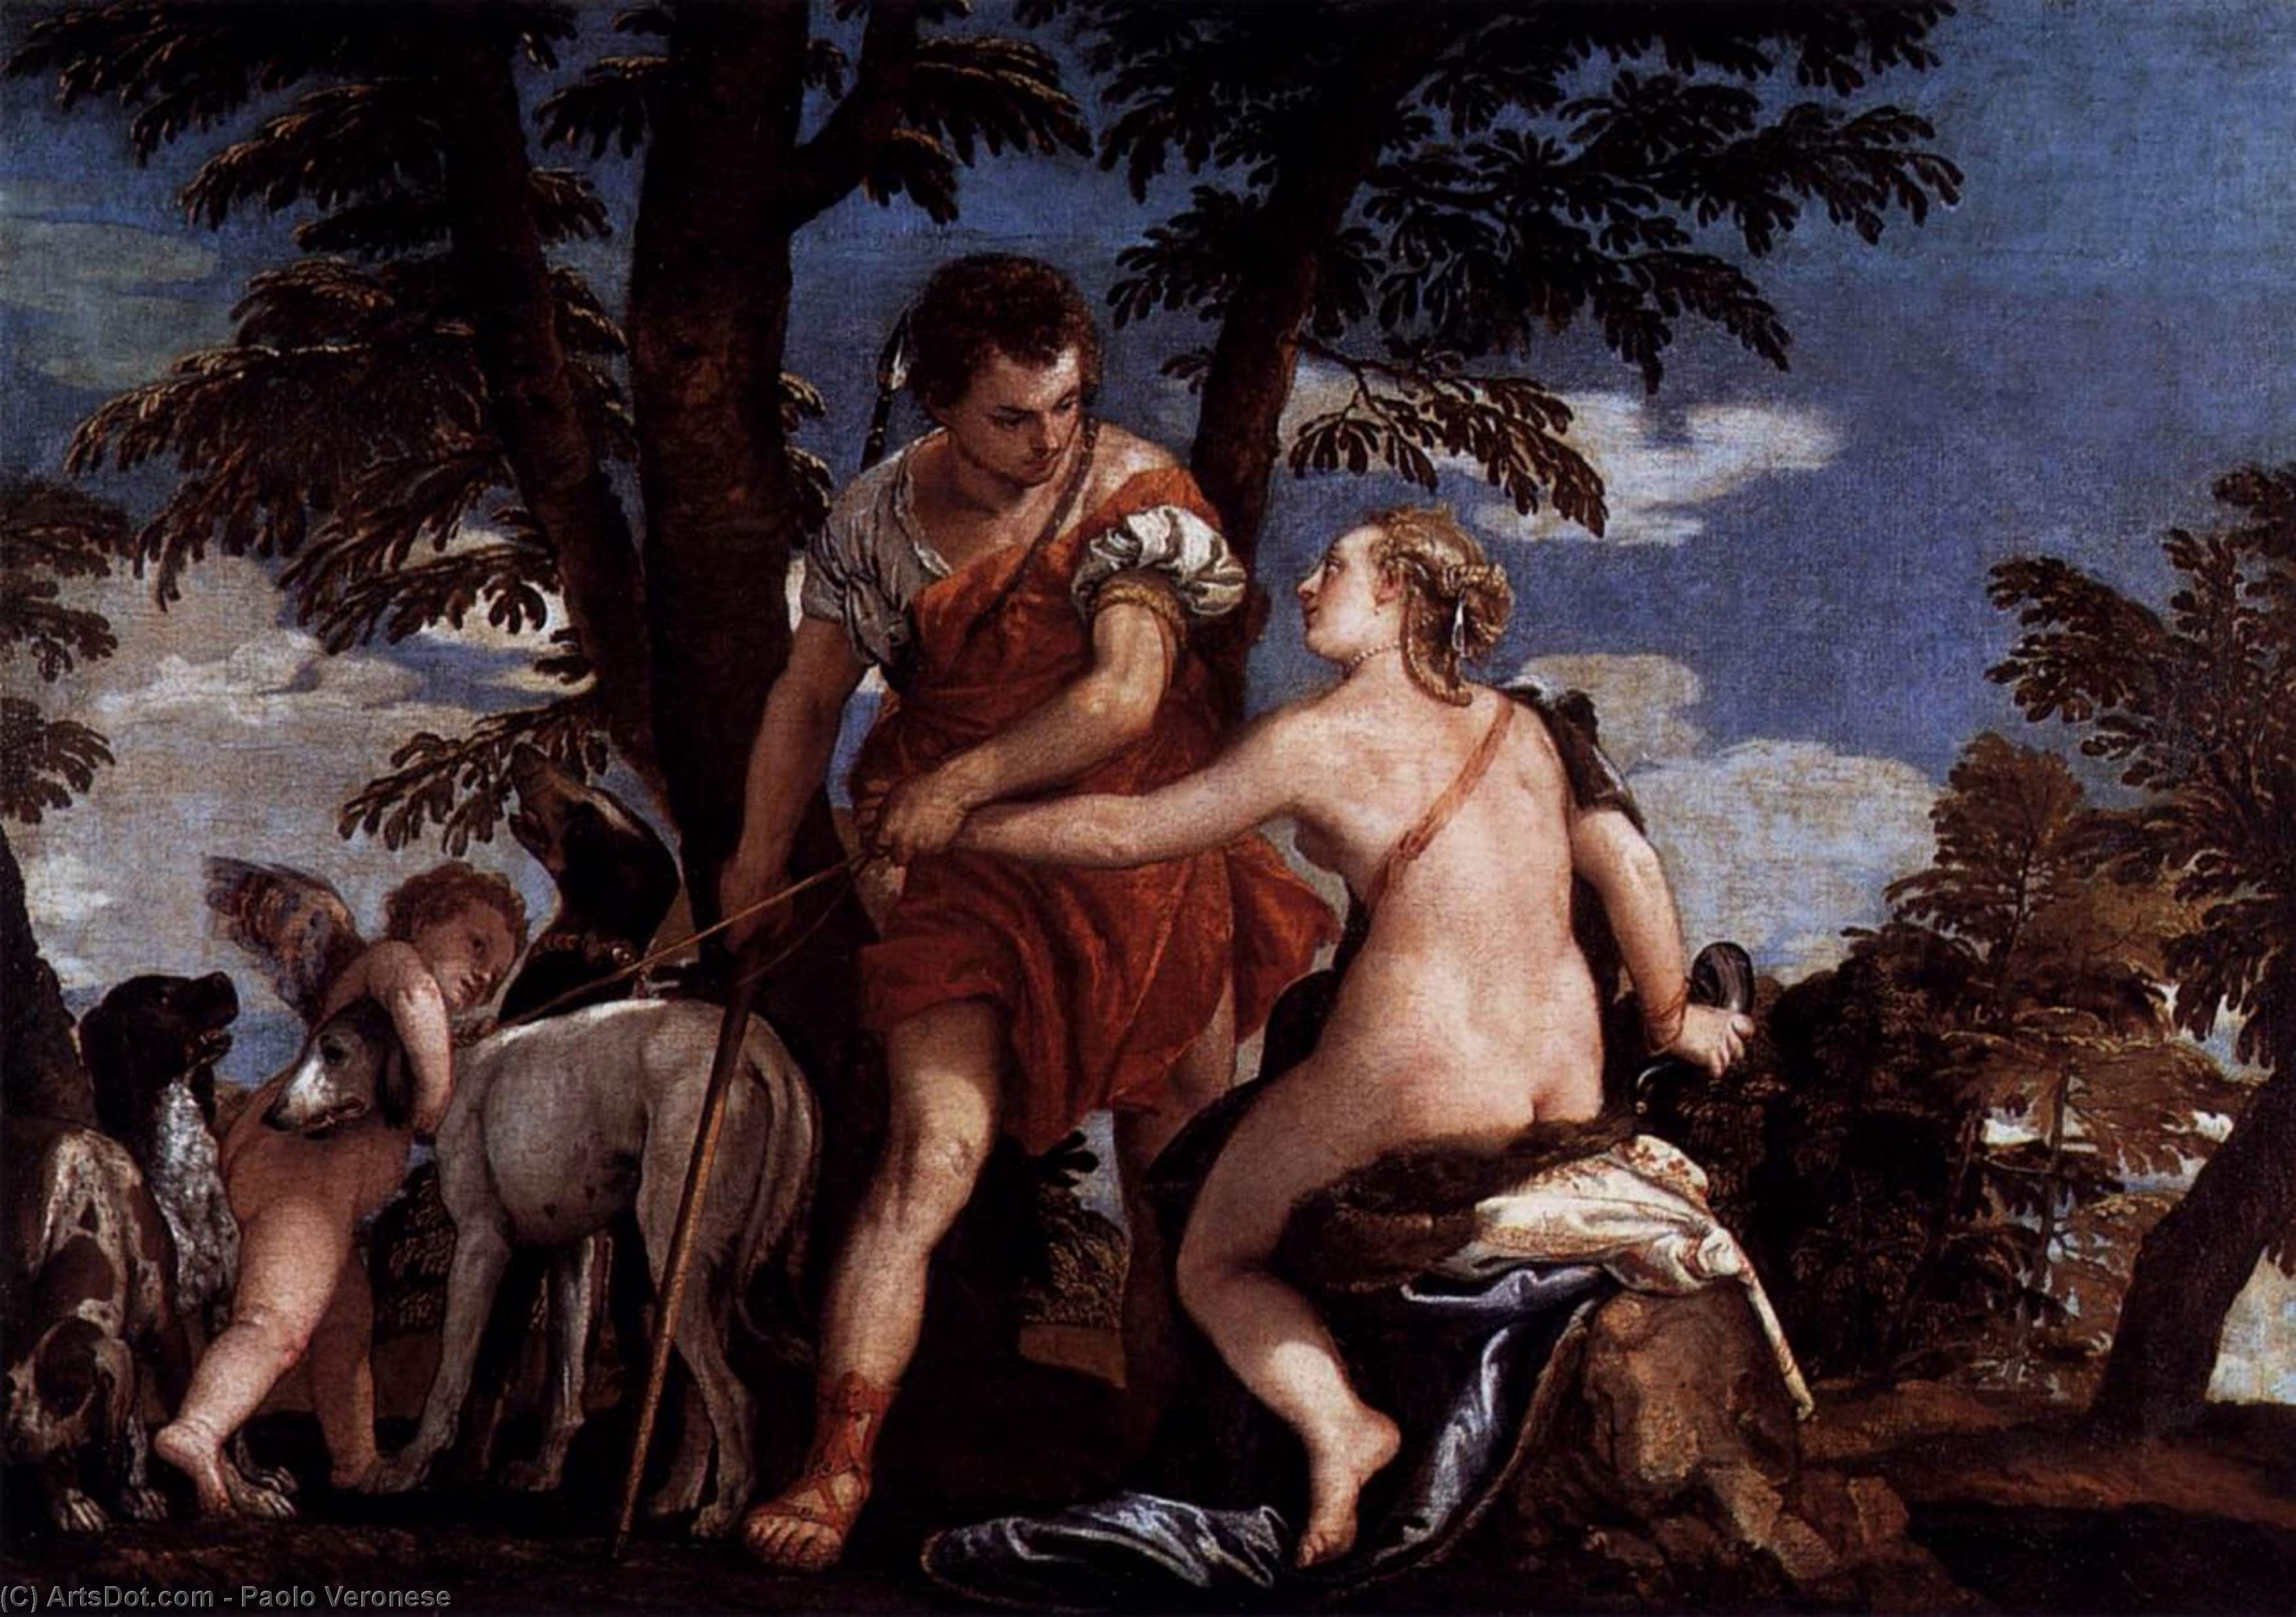 Wikioo.org - The Encyclopedia of Fine Arts - Painting, Artwork by Paolo Veronese - Venus and Adonis